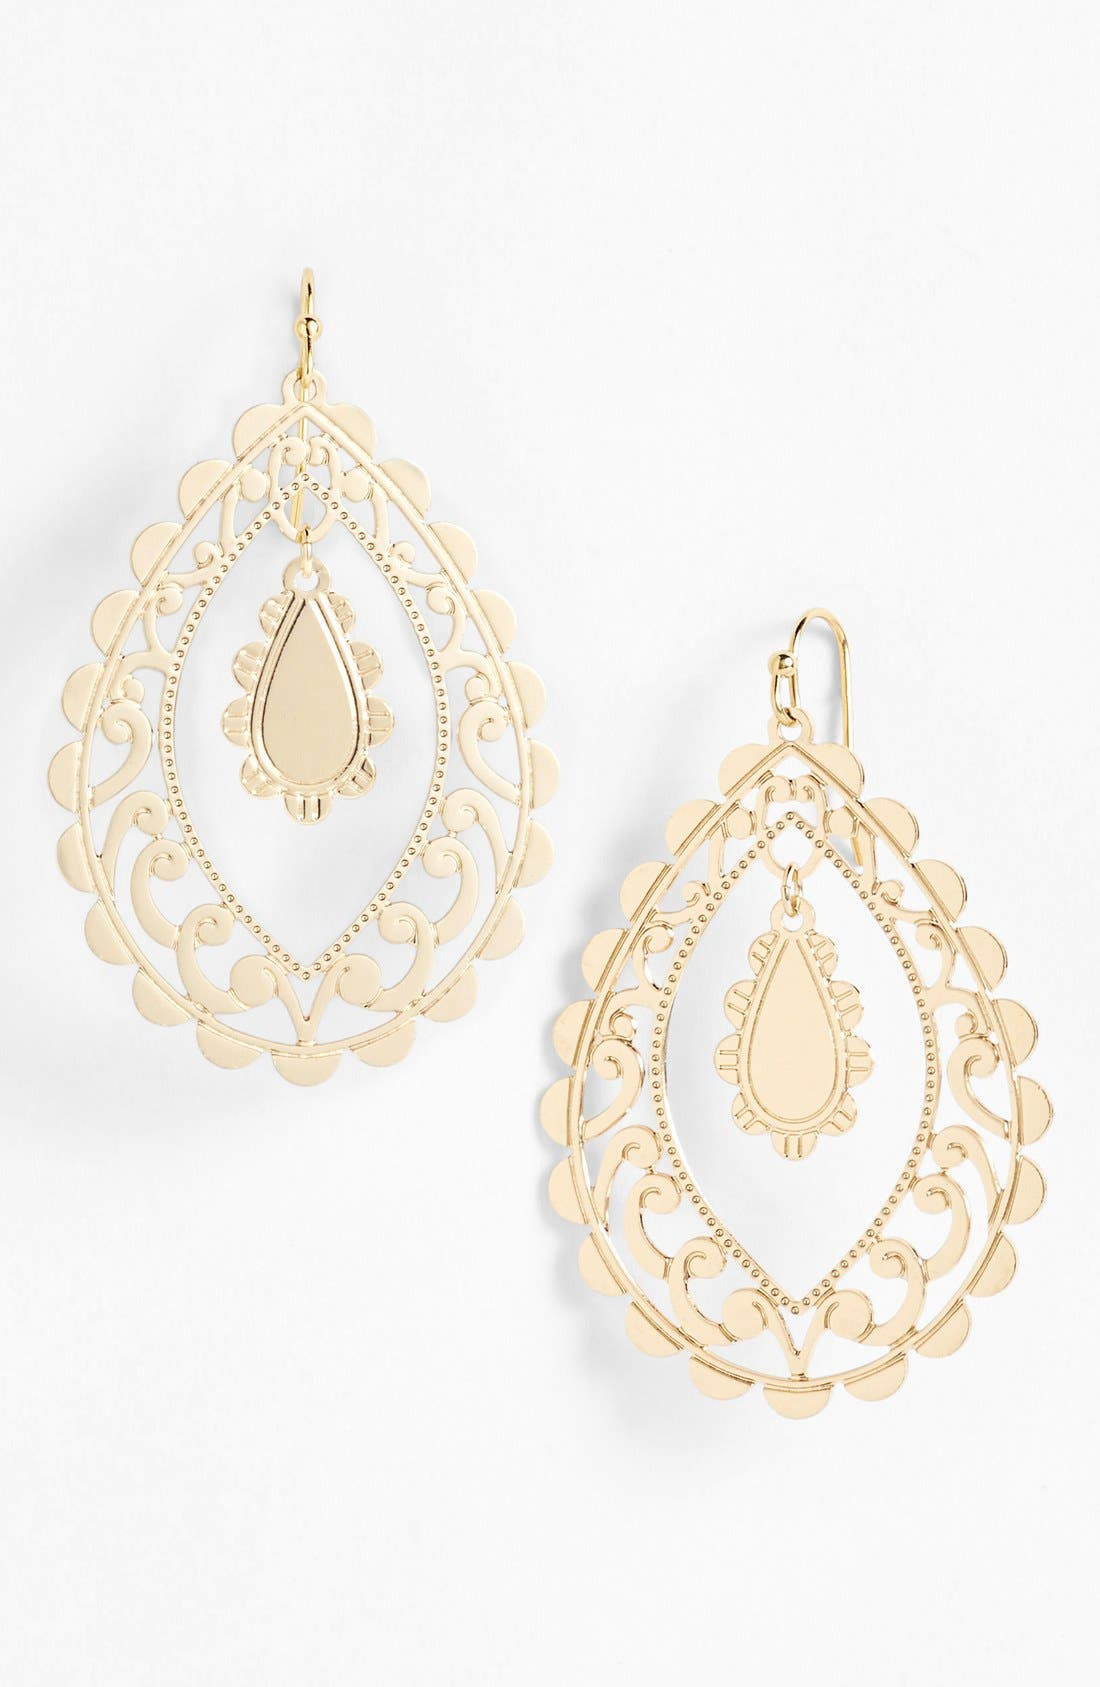 Main Image - Nordstrom 'Delicate Lace' Open Drop Earrings